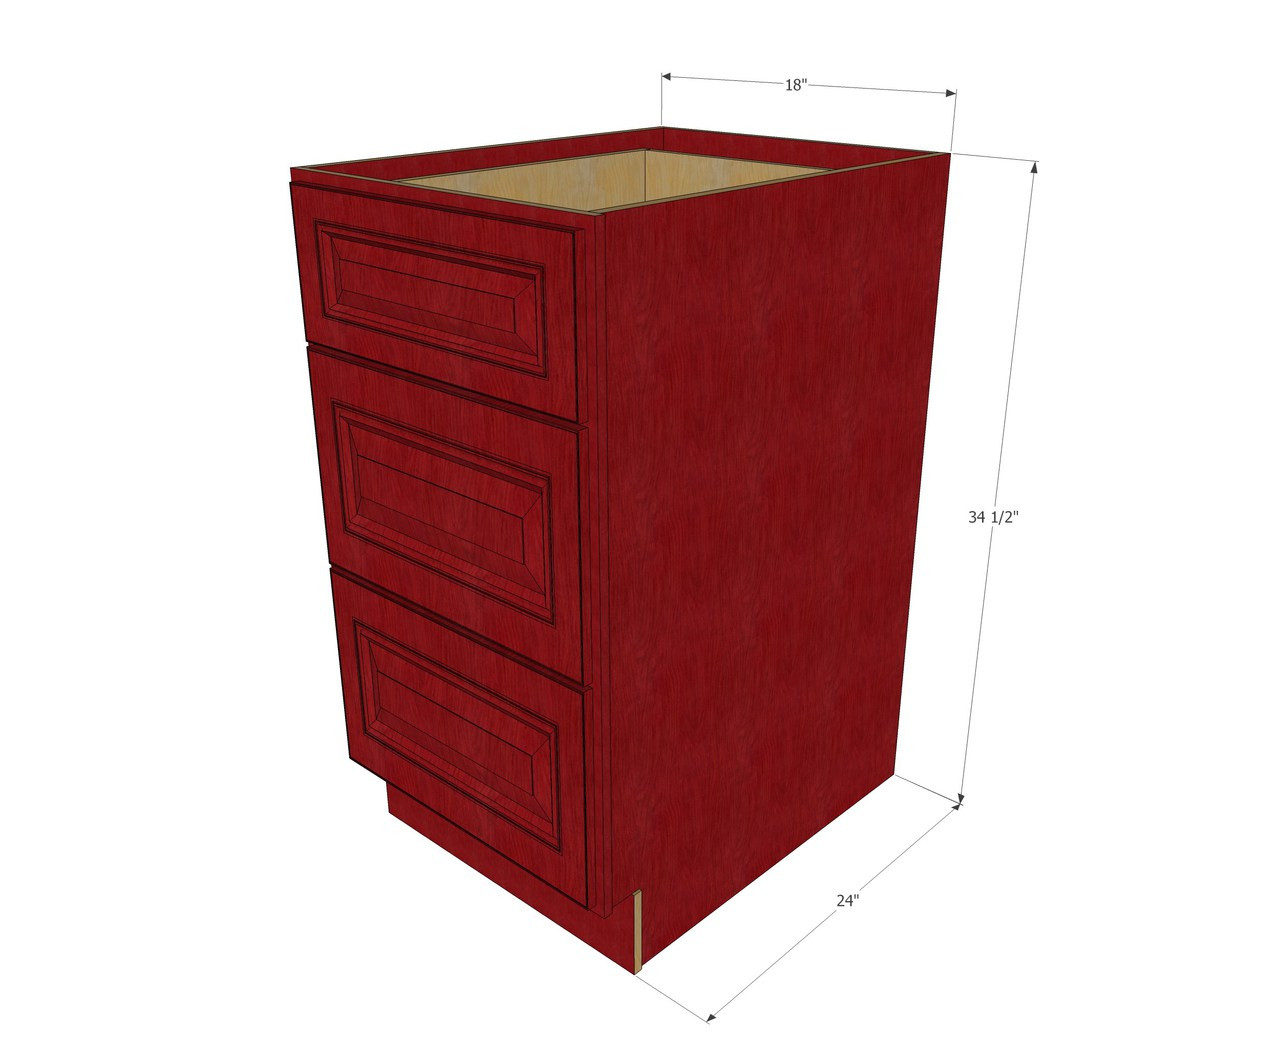 Grand Reserve Cherry 3 Drawer Base Cabinet 18 Inch Kitchen Cabinet Warehouse